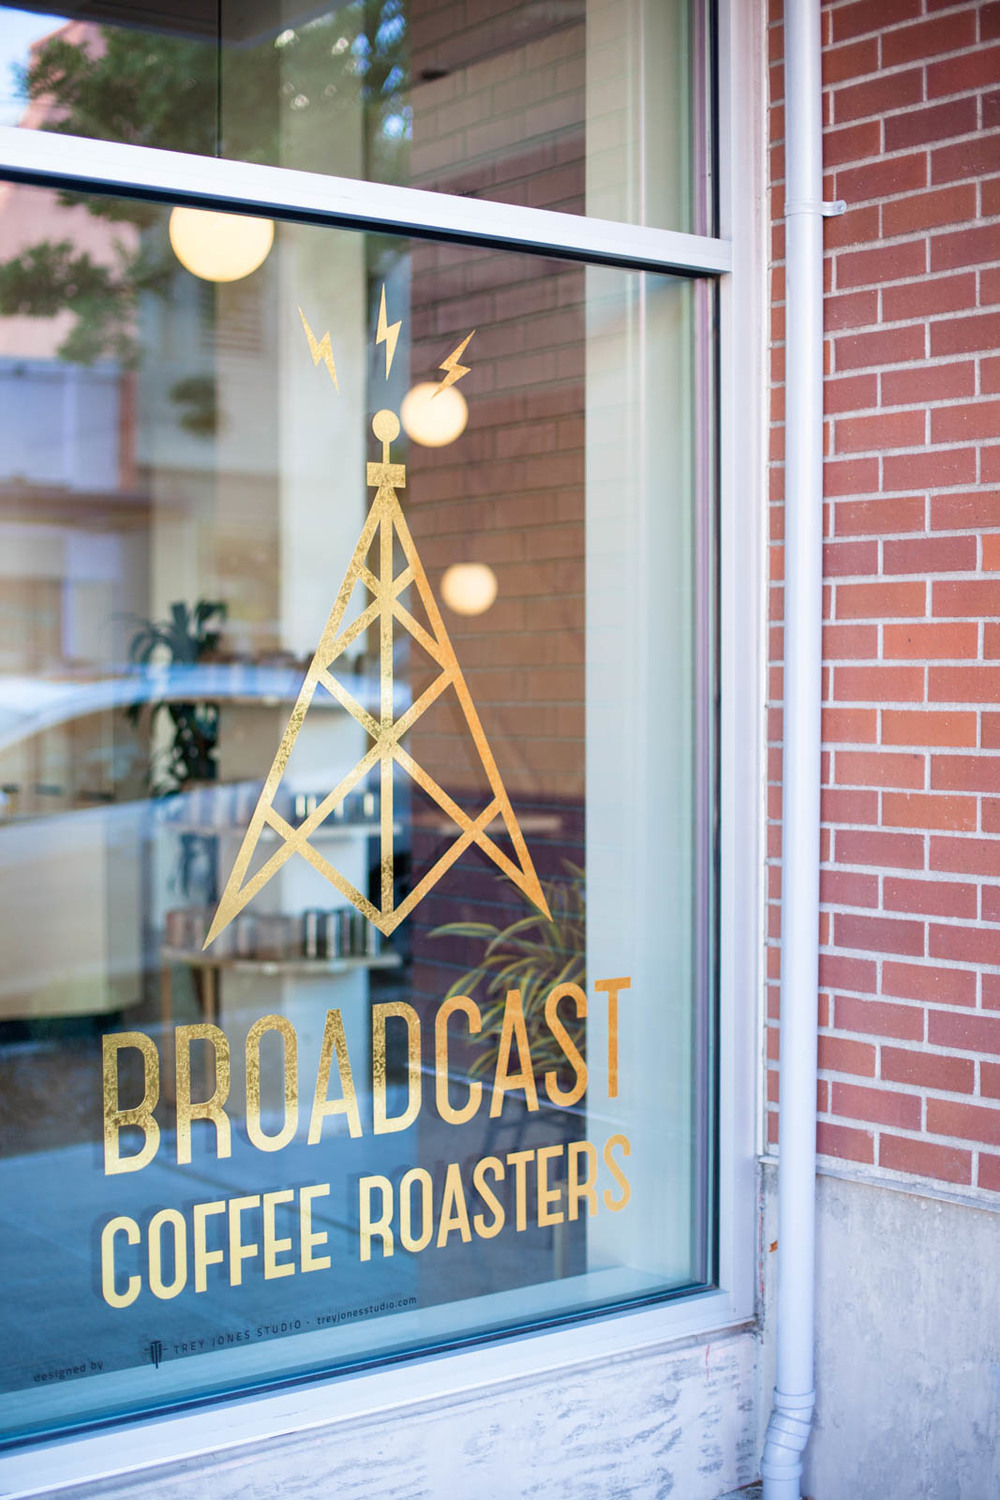 Broadcast Coffee / Jennifer Chong